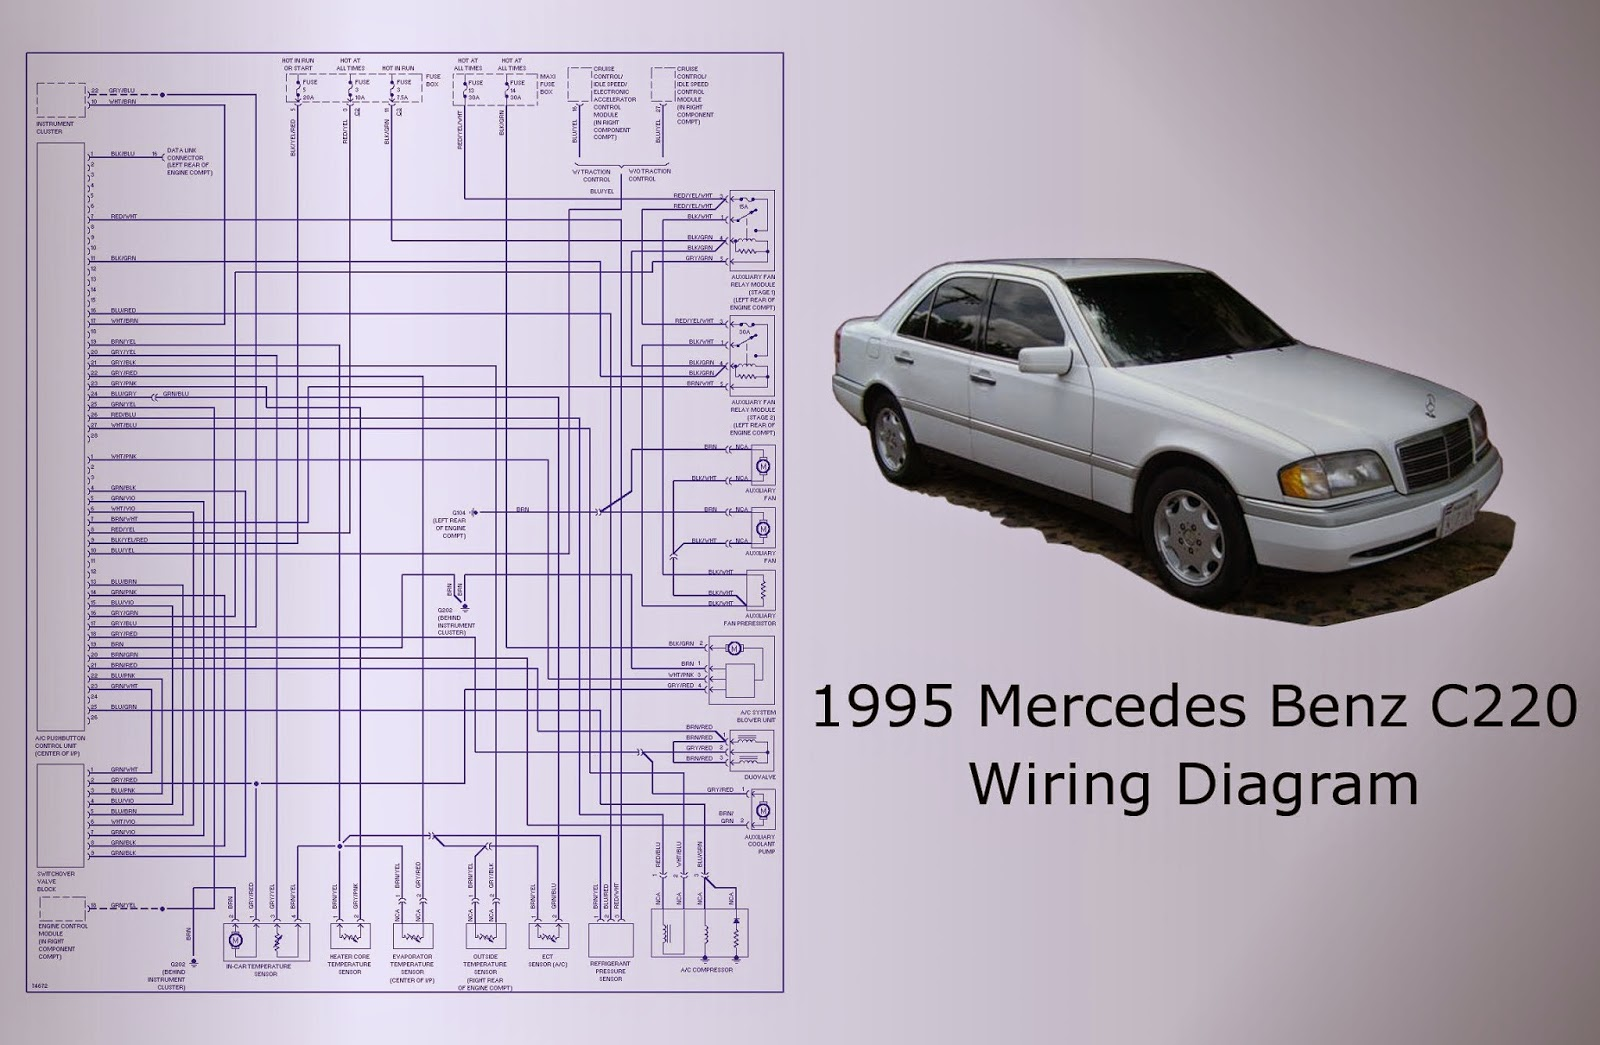 hight resolution of 1995 mercedes benz c220 wiring diagram auto wiring diagrams mercedes benz wiring diagram mercedes benz wiring